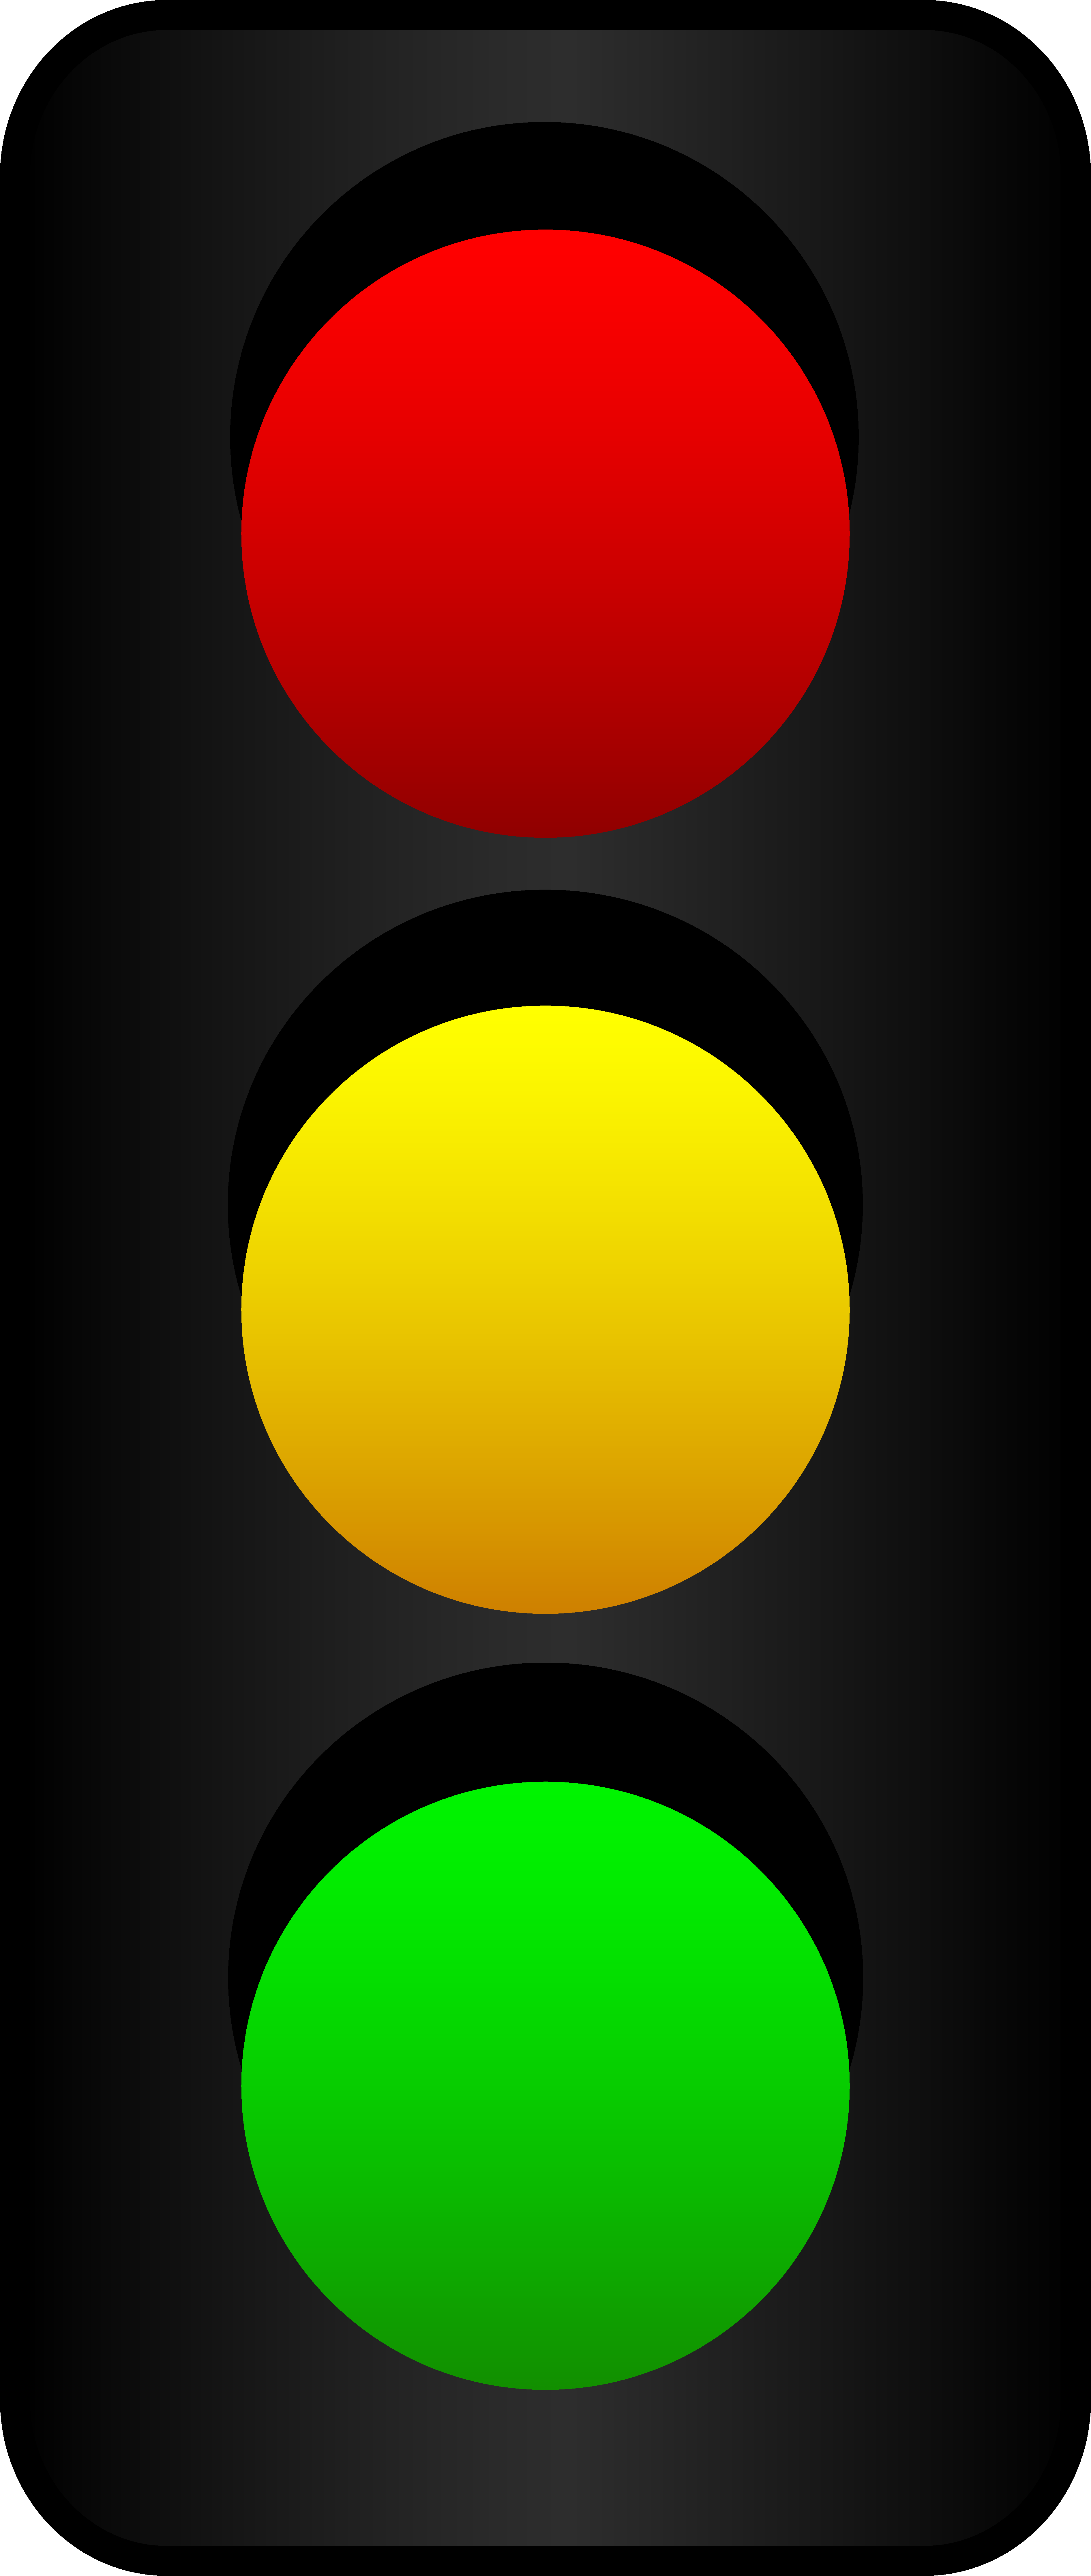 Thank God Everyone Agrees On The Color Of Traffic Lights - Traffic Light, Transparent background PNG HD thumbnail